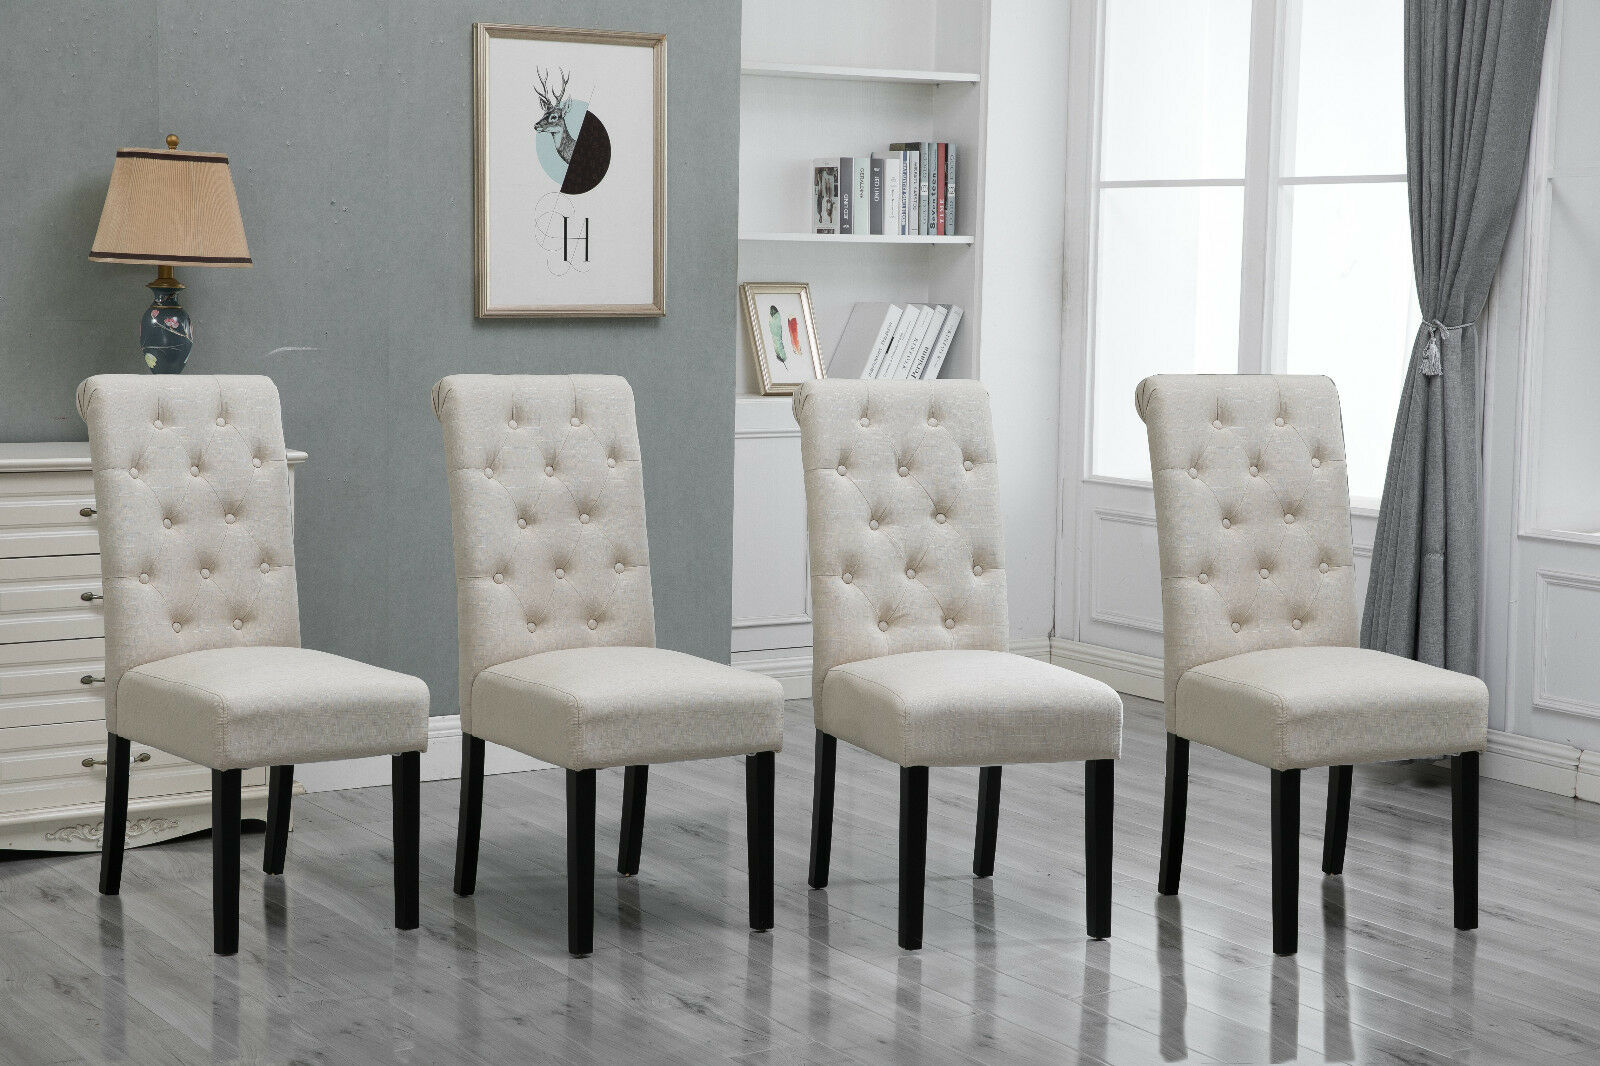 4x Beige Dining Chairs High Back Fabric Upholstered On Tufted Room